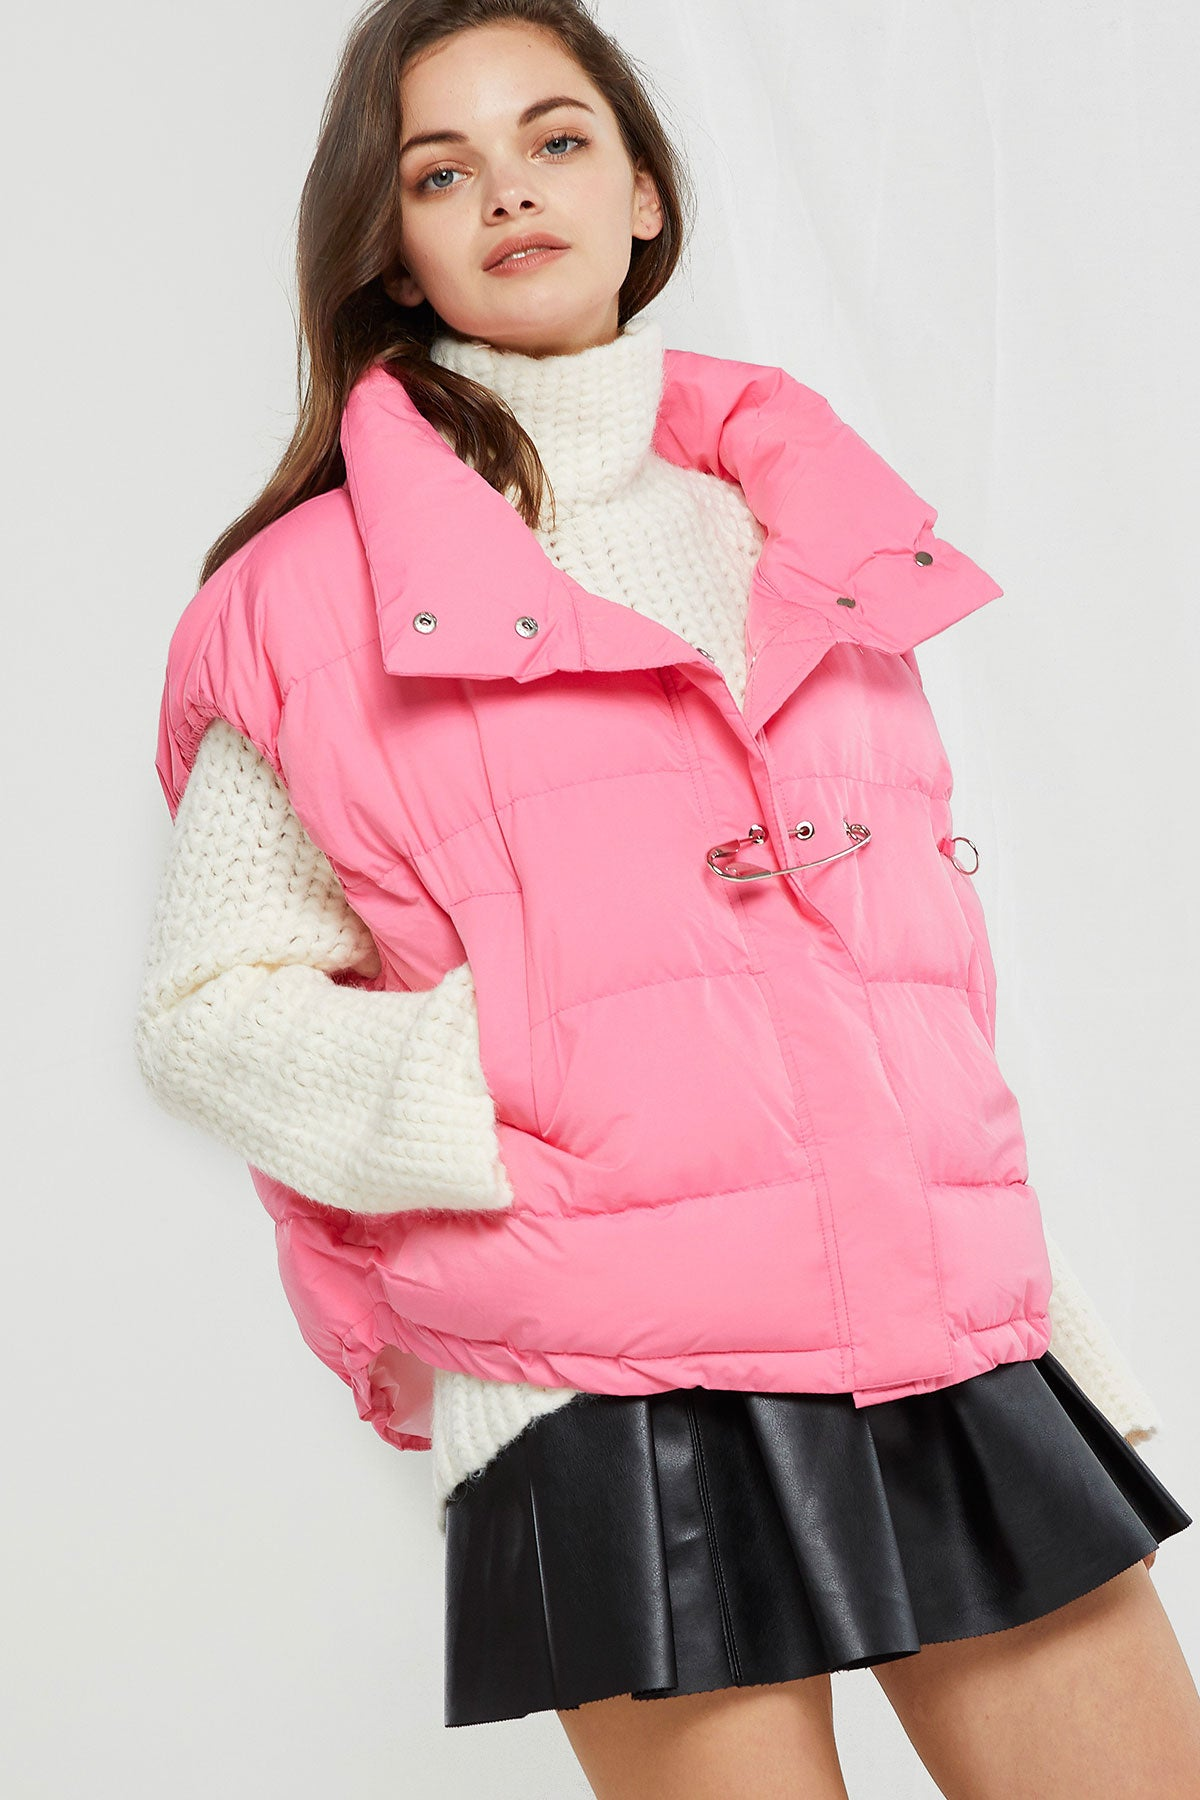 Somi Safety Pin Puffer Vest (Pre-Order)